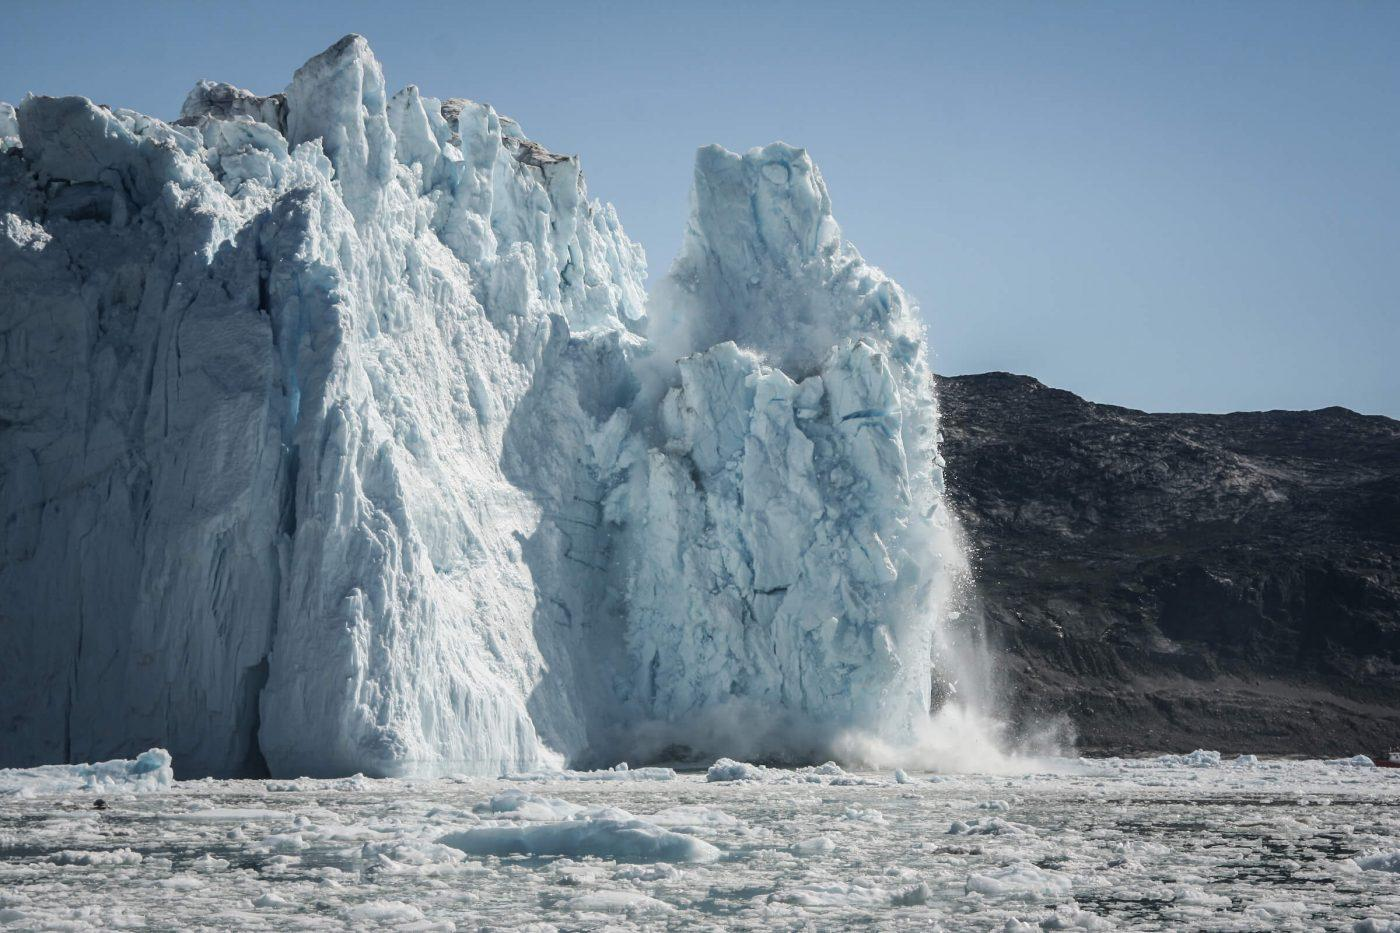 Calving glacier in Greenland, by Leif Taurer